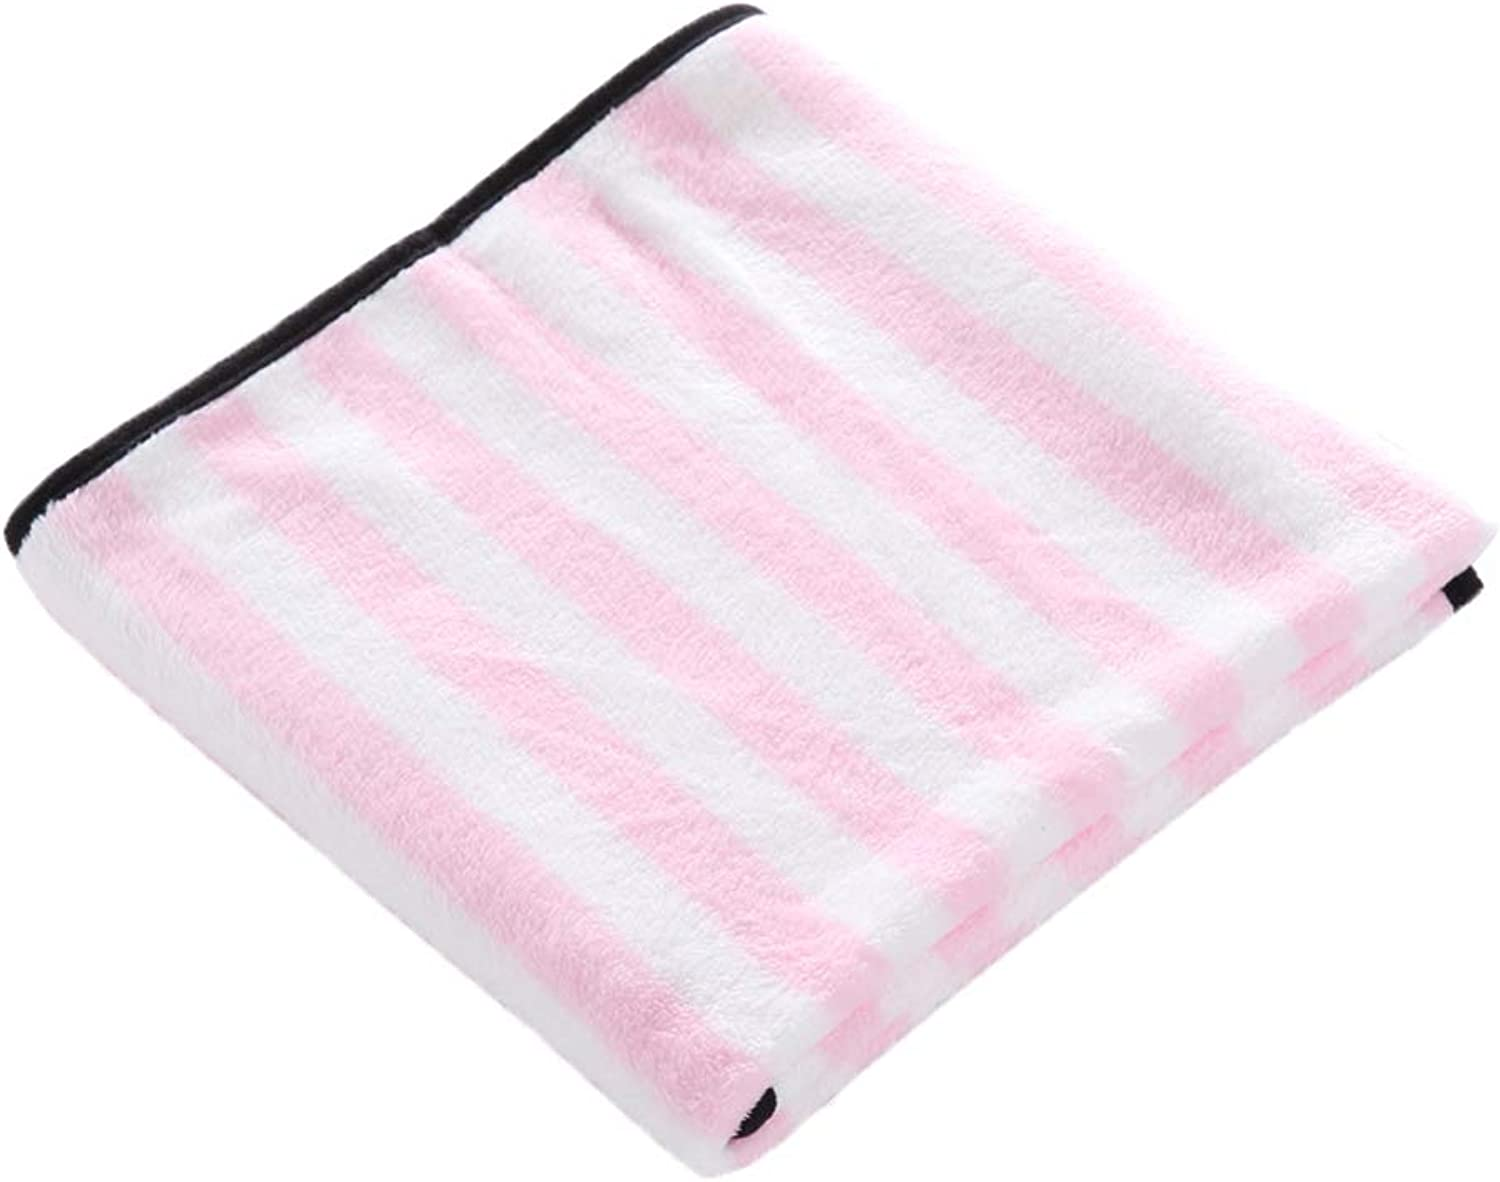 Premium Fluffy Fleece Dog Blanket Soft And Warm Pet Throw for Dogs Cats Blanket Fabric Washable Cozy Portable Durable,Pink,M